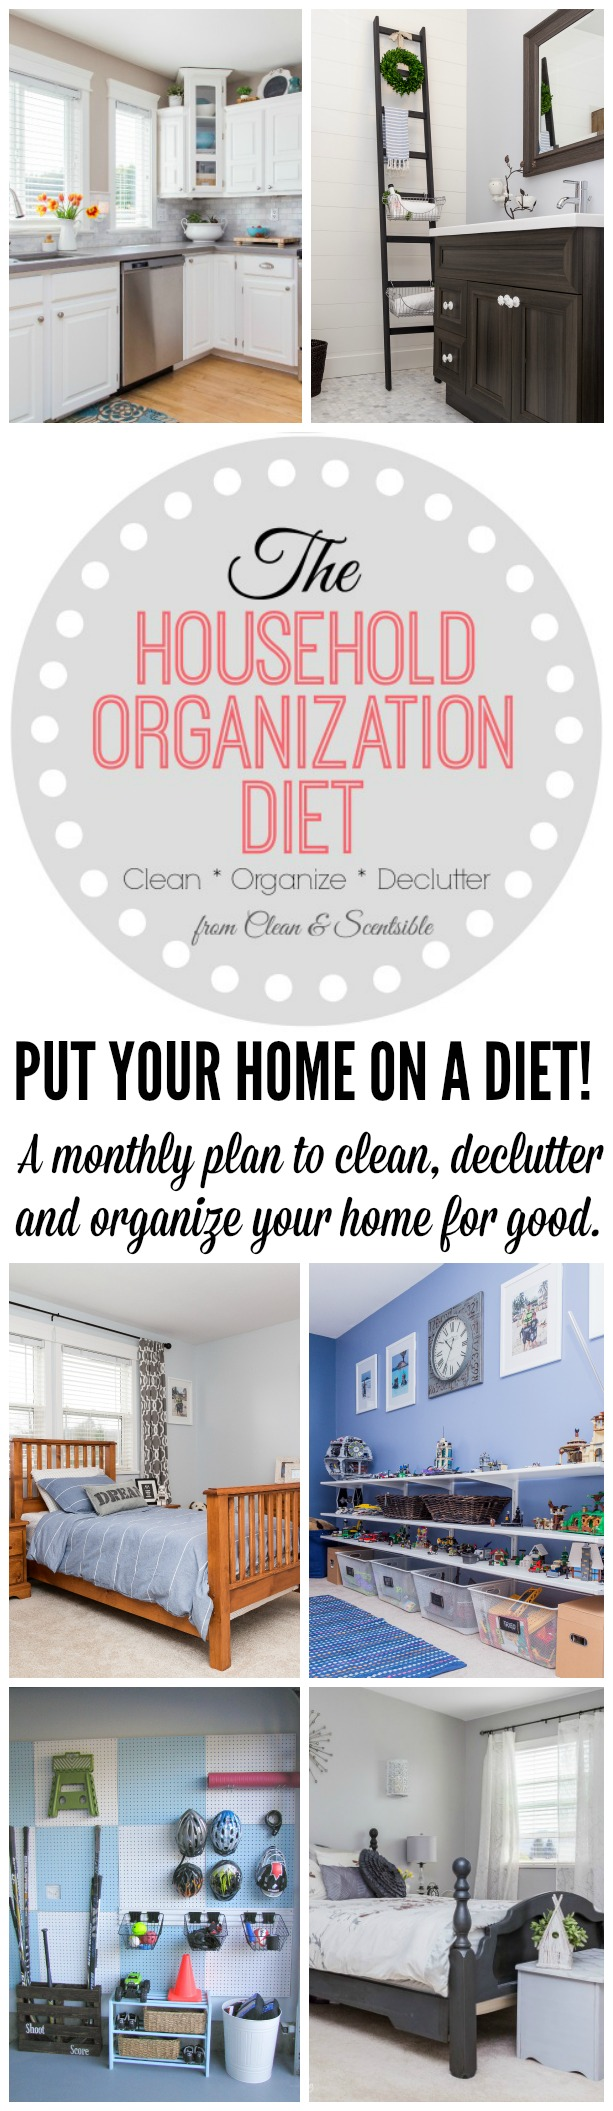 The 31 day household detox 2016 clean and scentsible for Declutter house plan